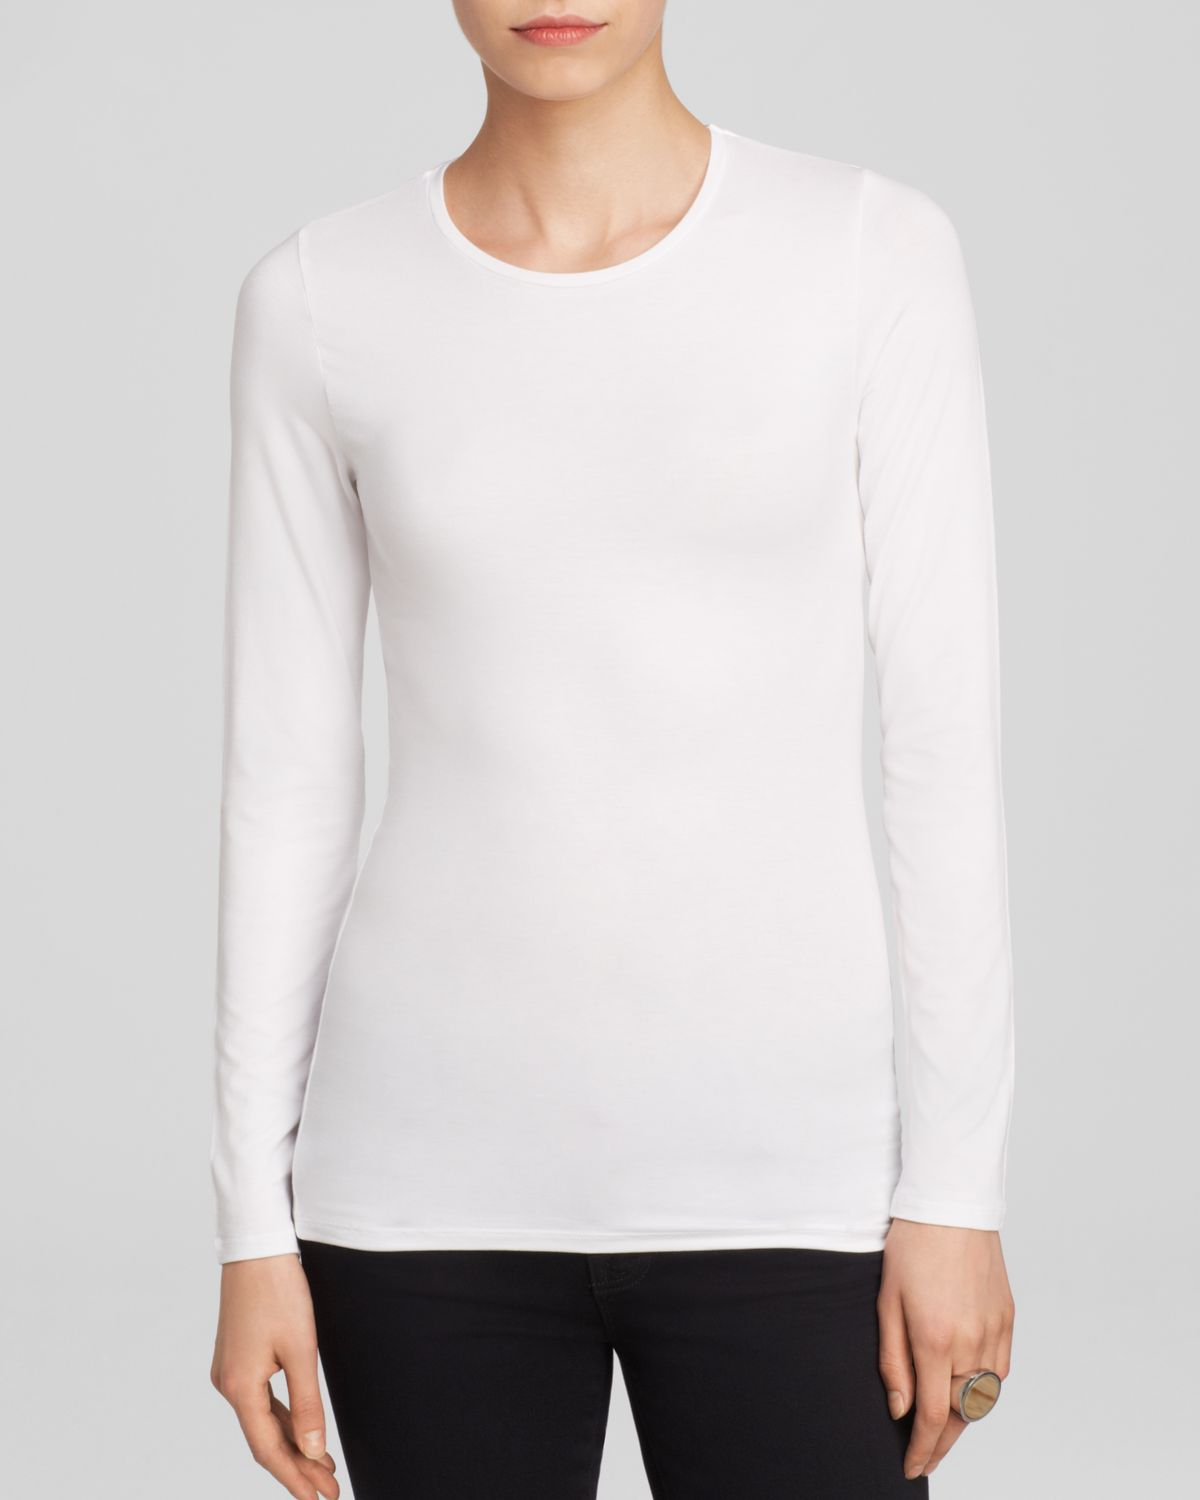 Majestic long sleeve crew neck tee in white for Crew neck white t shirt